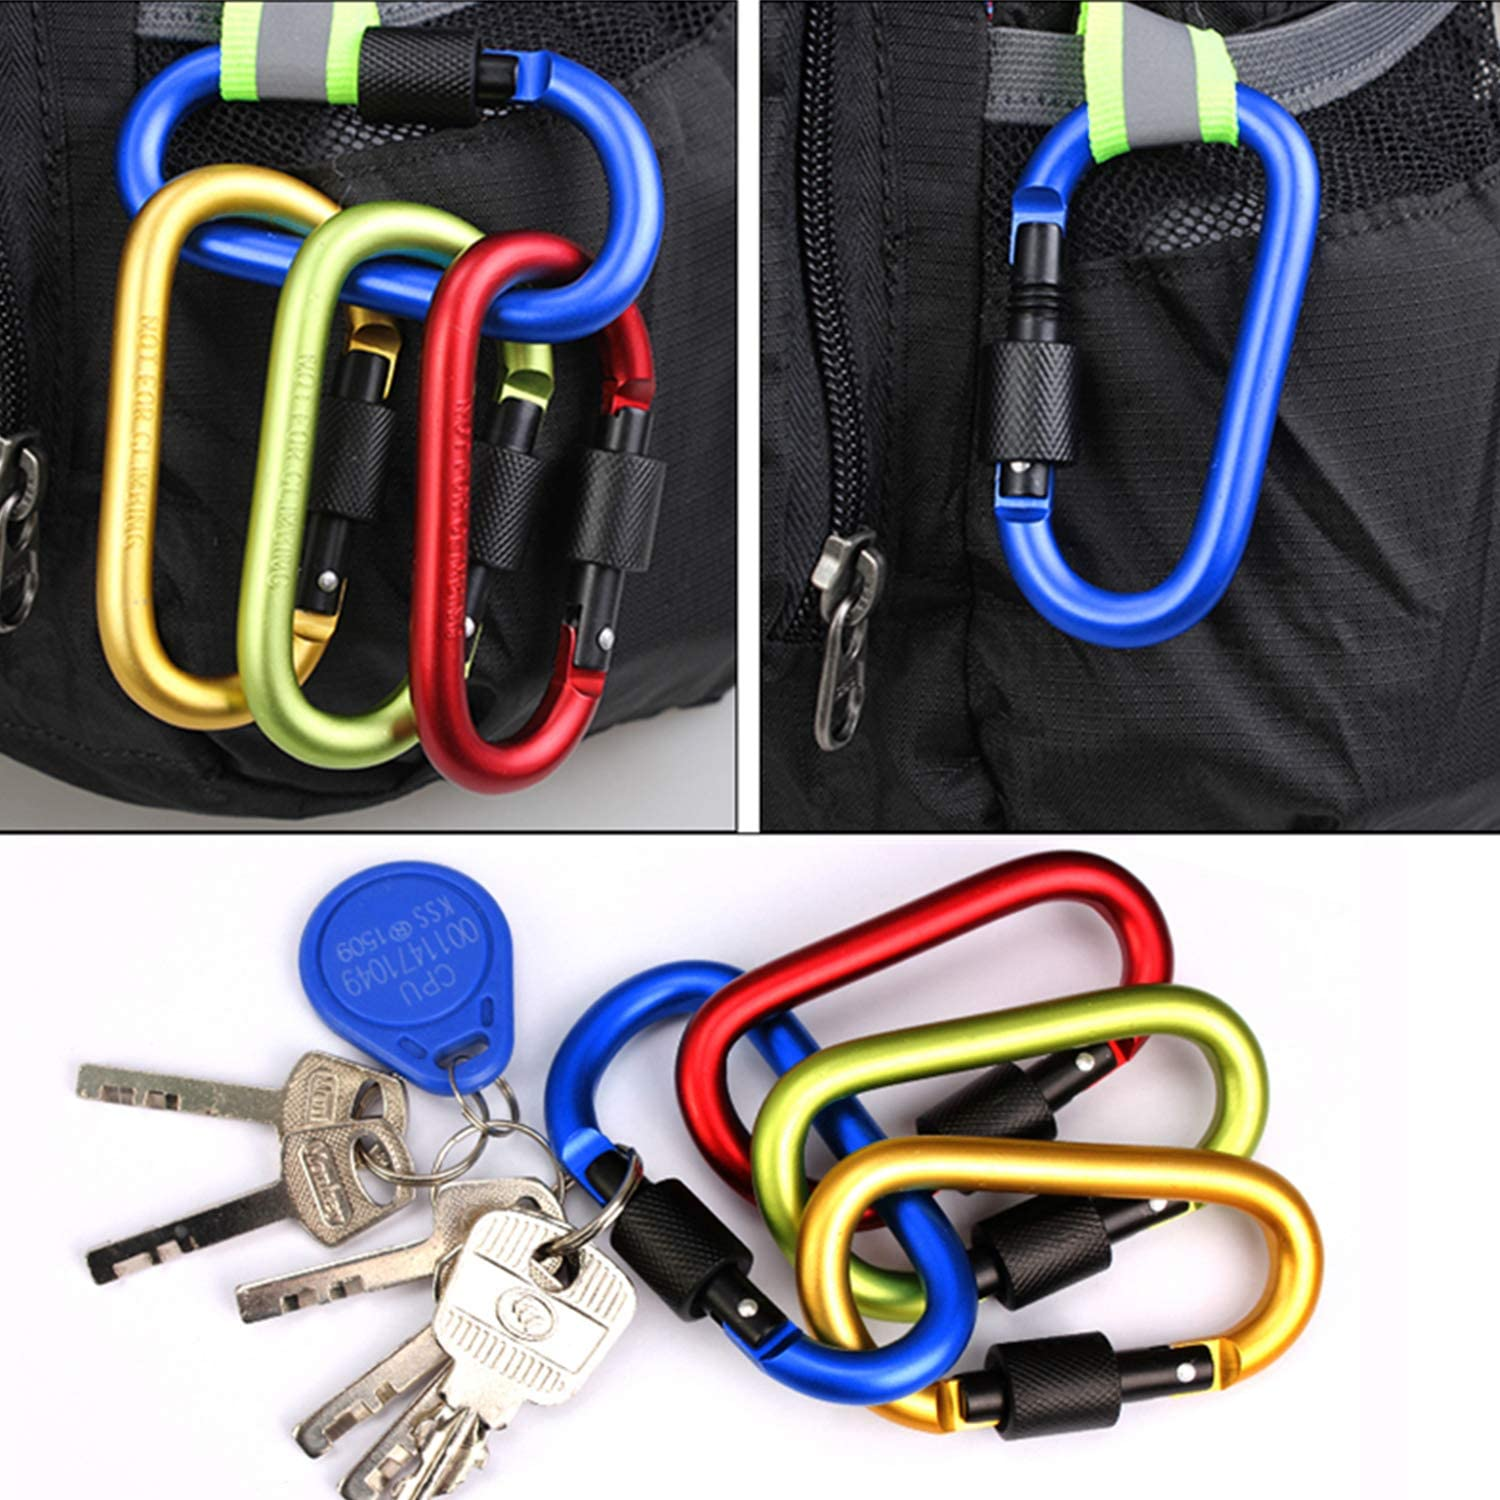 Traveling Improved Durable Spring 7 Packs Fishing Camping Hiking Rv WAKUSEI Carabiner Clips Hook for Home